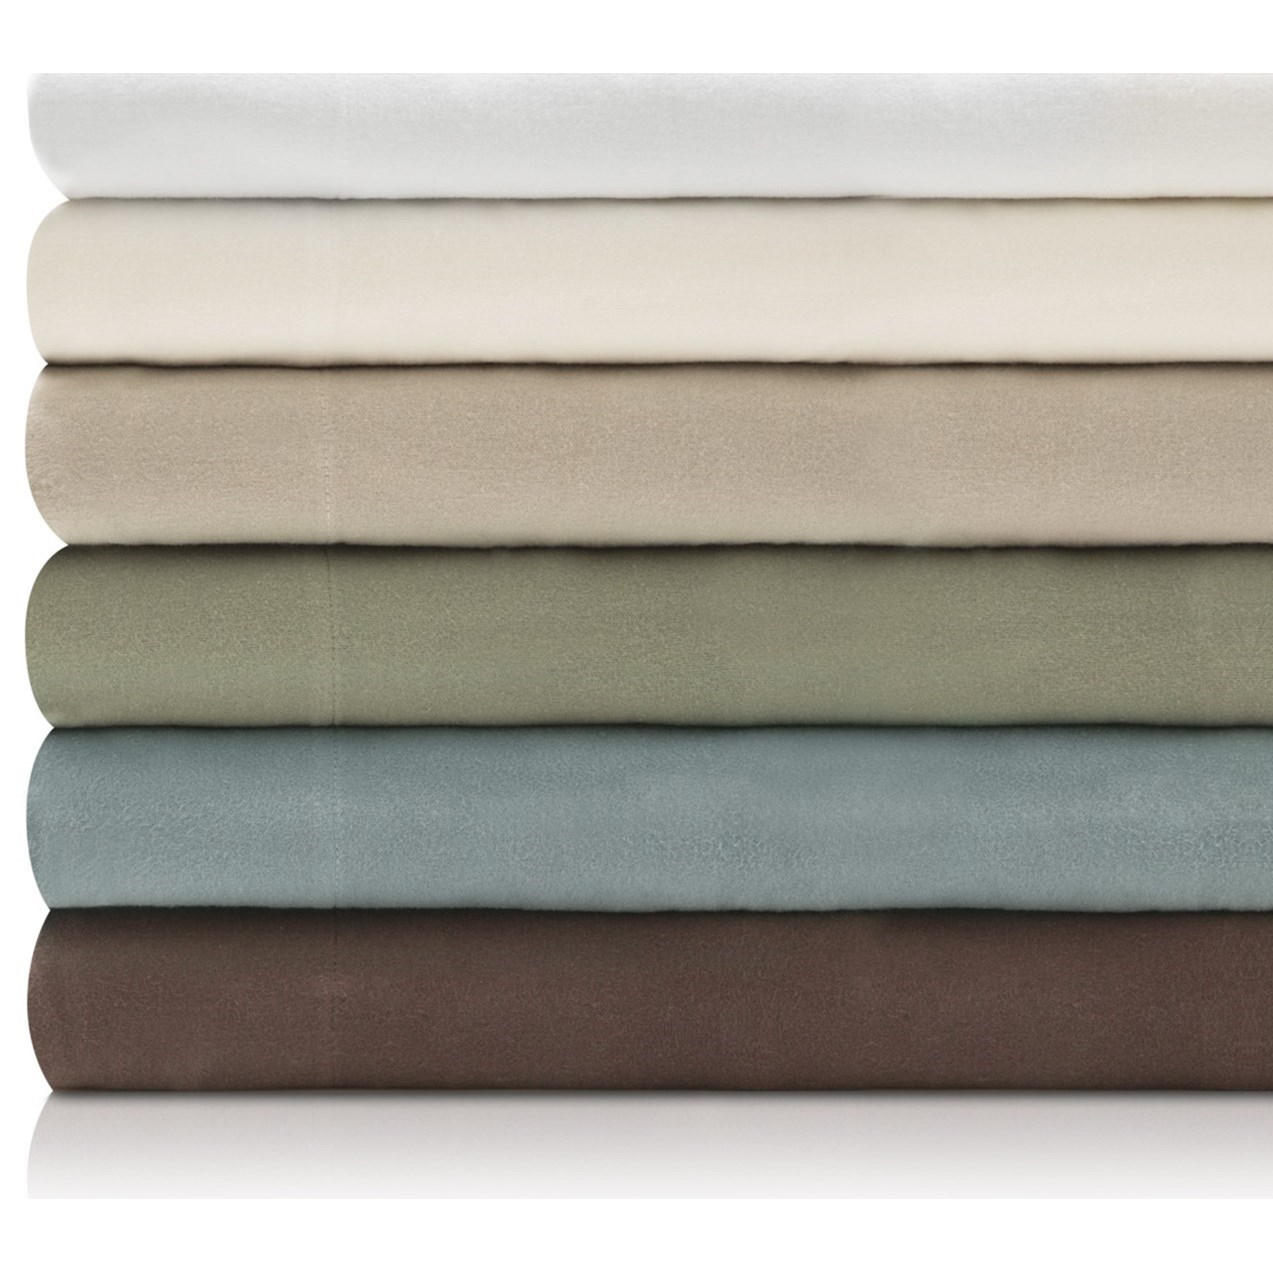 Malouf Portuguese Flannel Twin Woven™ Portuguese Flannel Sheet Set - Item Number: WO19TTWHFS